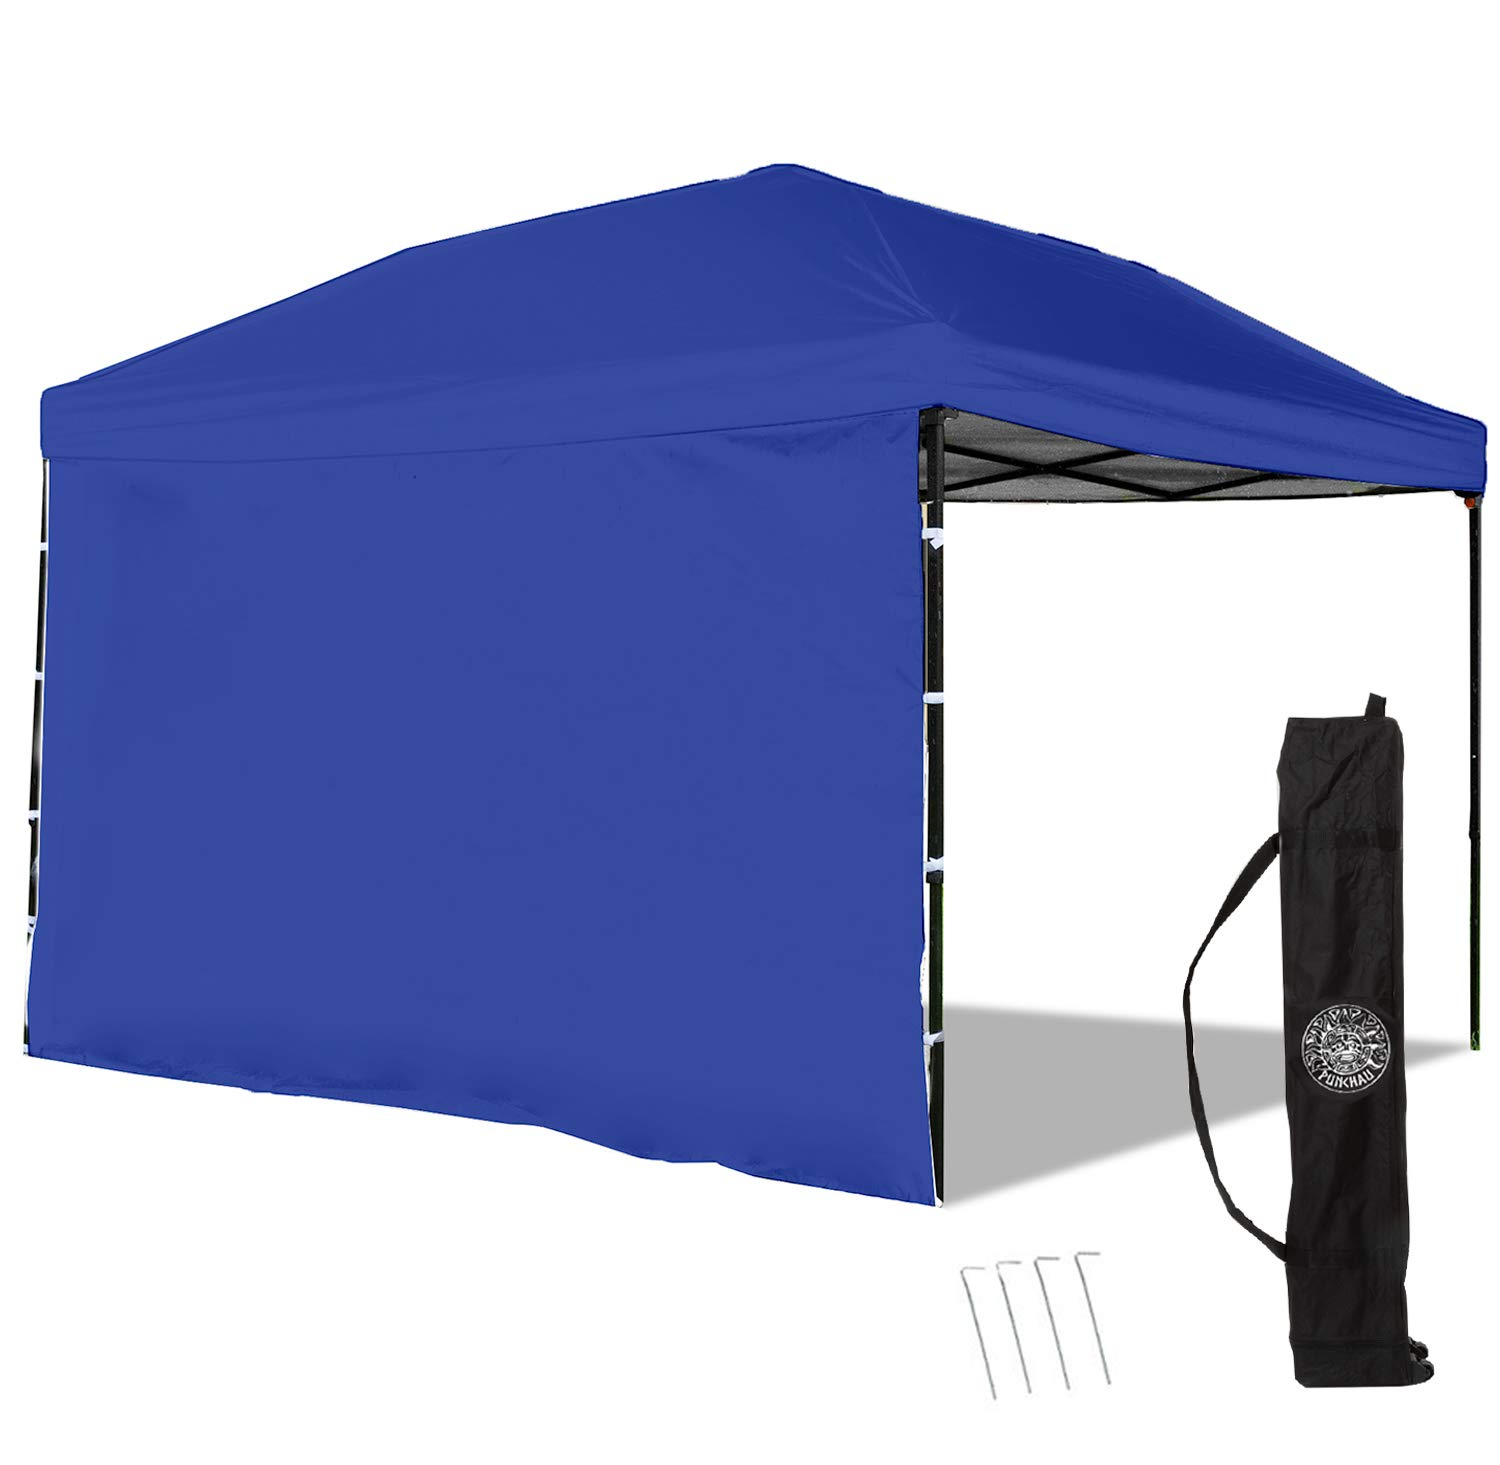 Punchau Pop-Up Canopy Tent with Sidewall